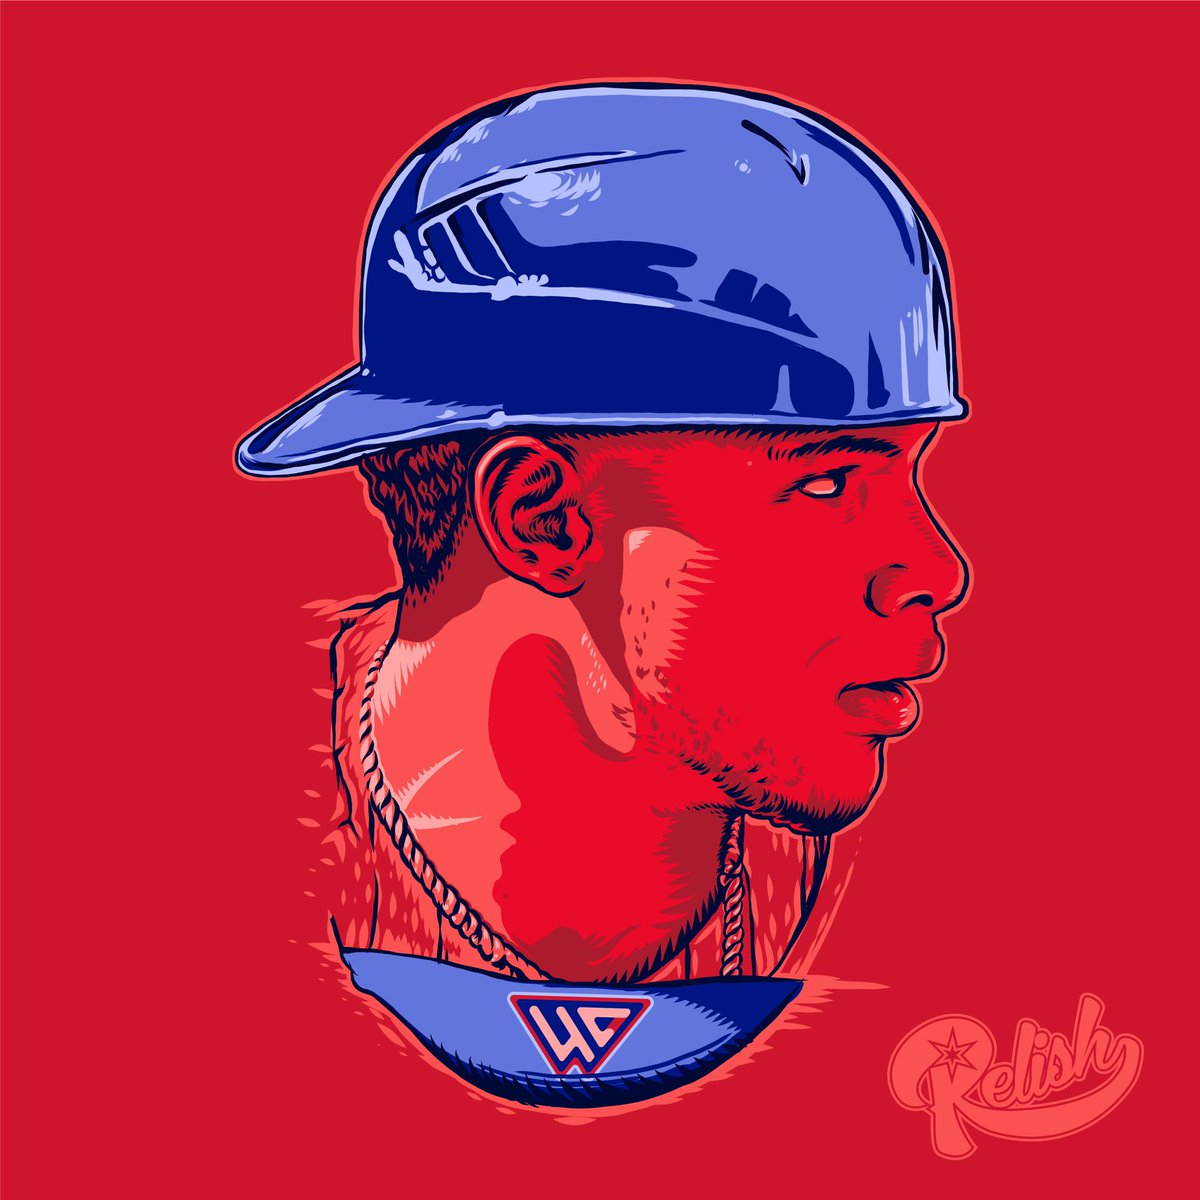 Made an illustration of @WContreras40 for fun. Trying to get back in the mood to draw again. #willsoncontreras https://t.co/jc3vmCfnbQ